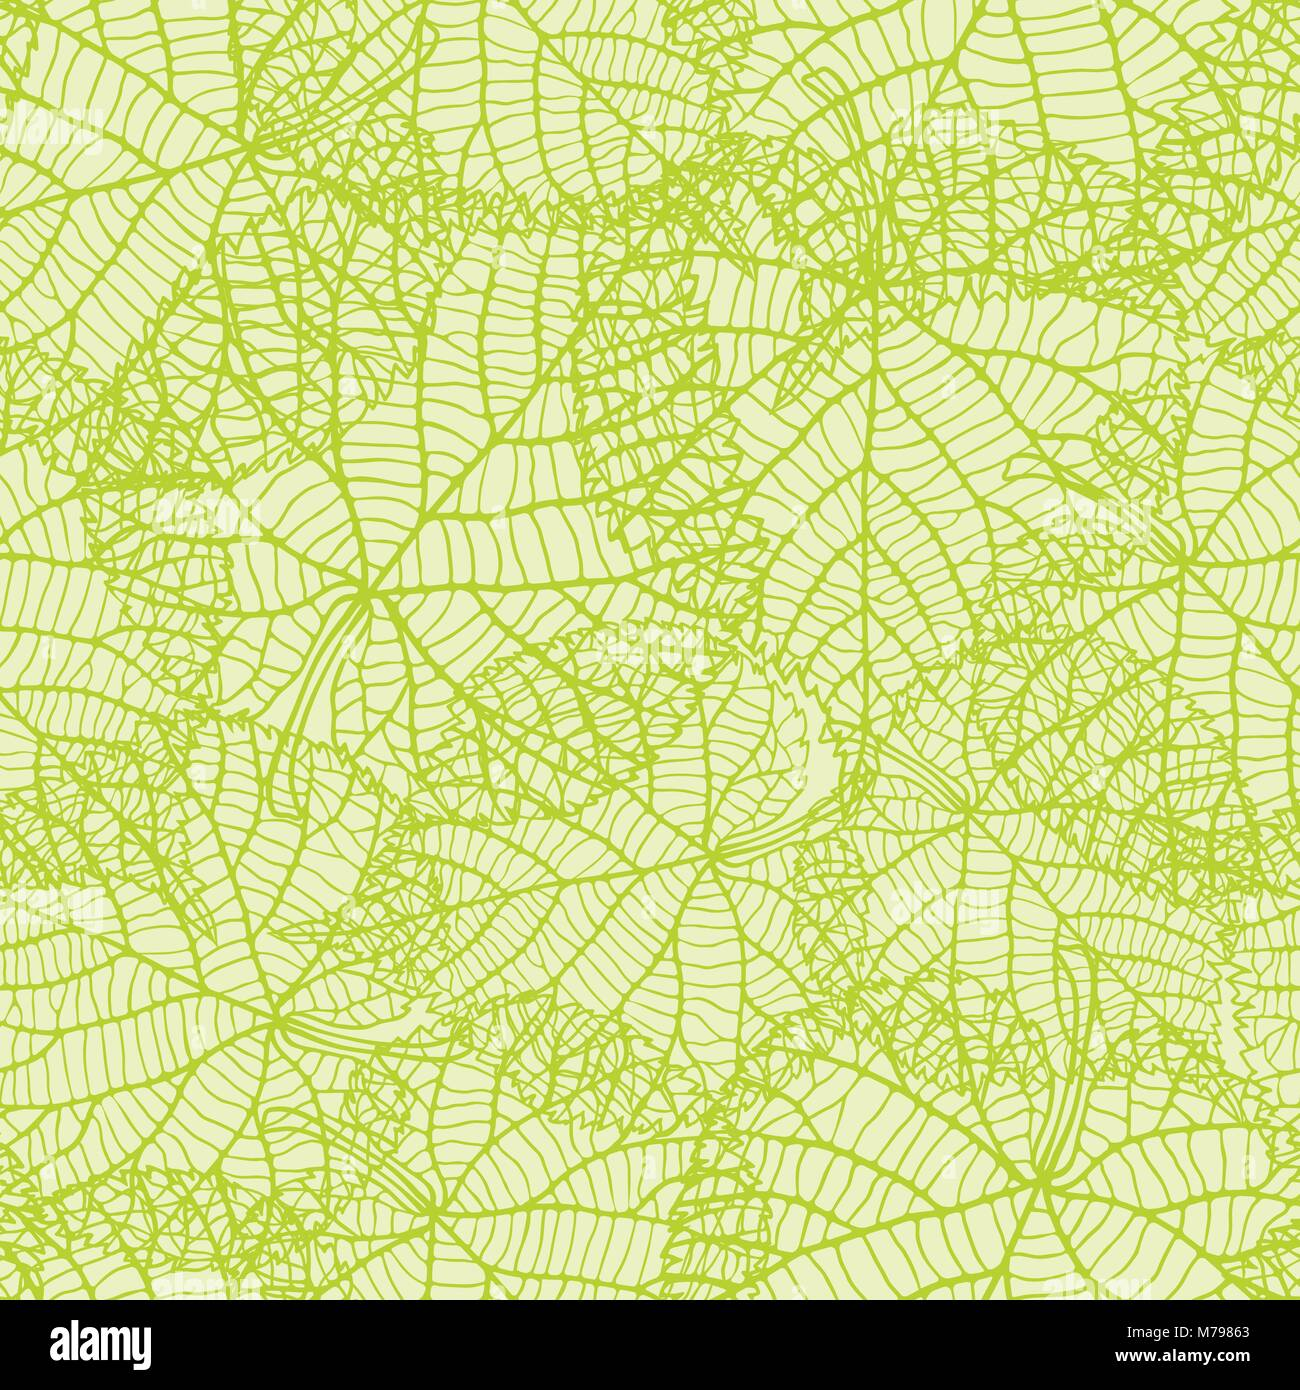 Seamless nature pattern with green leaves. - Stock Vector